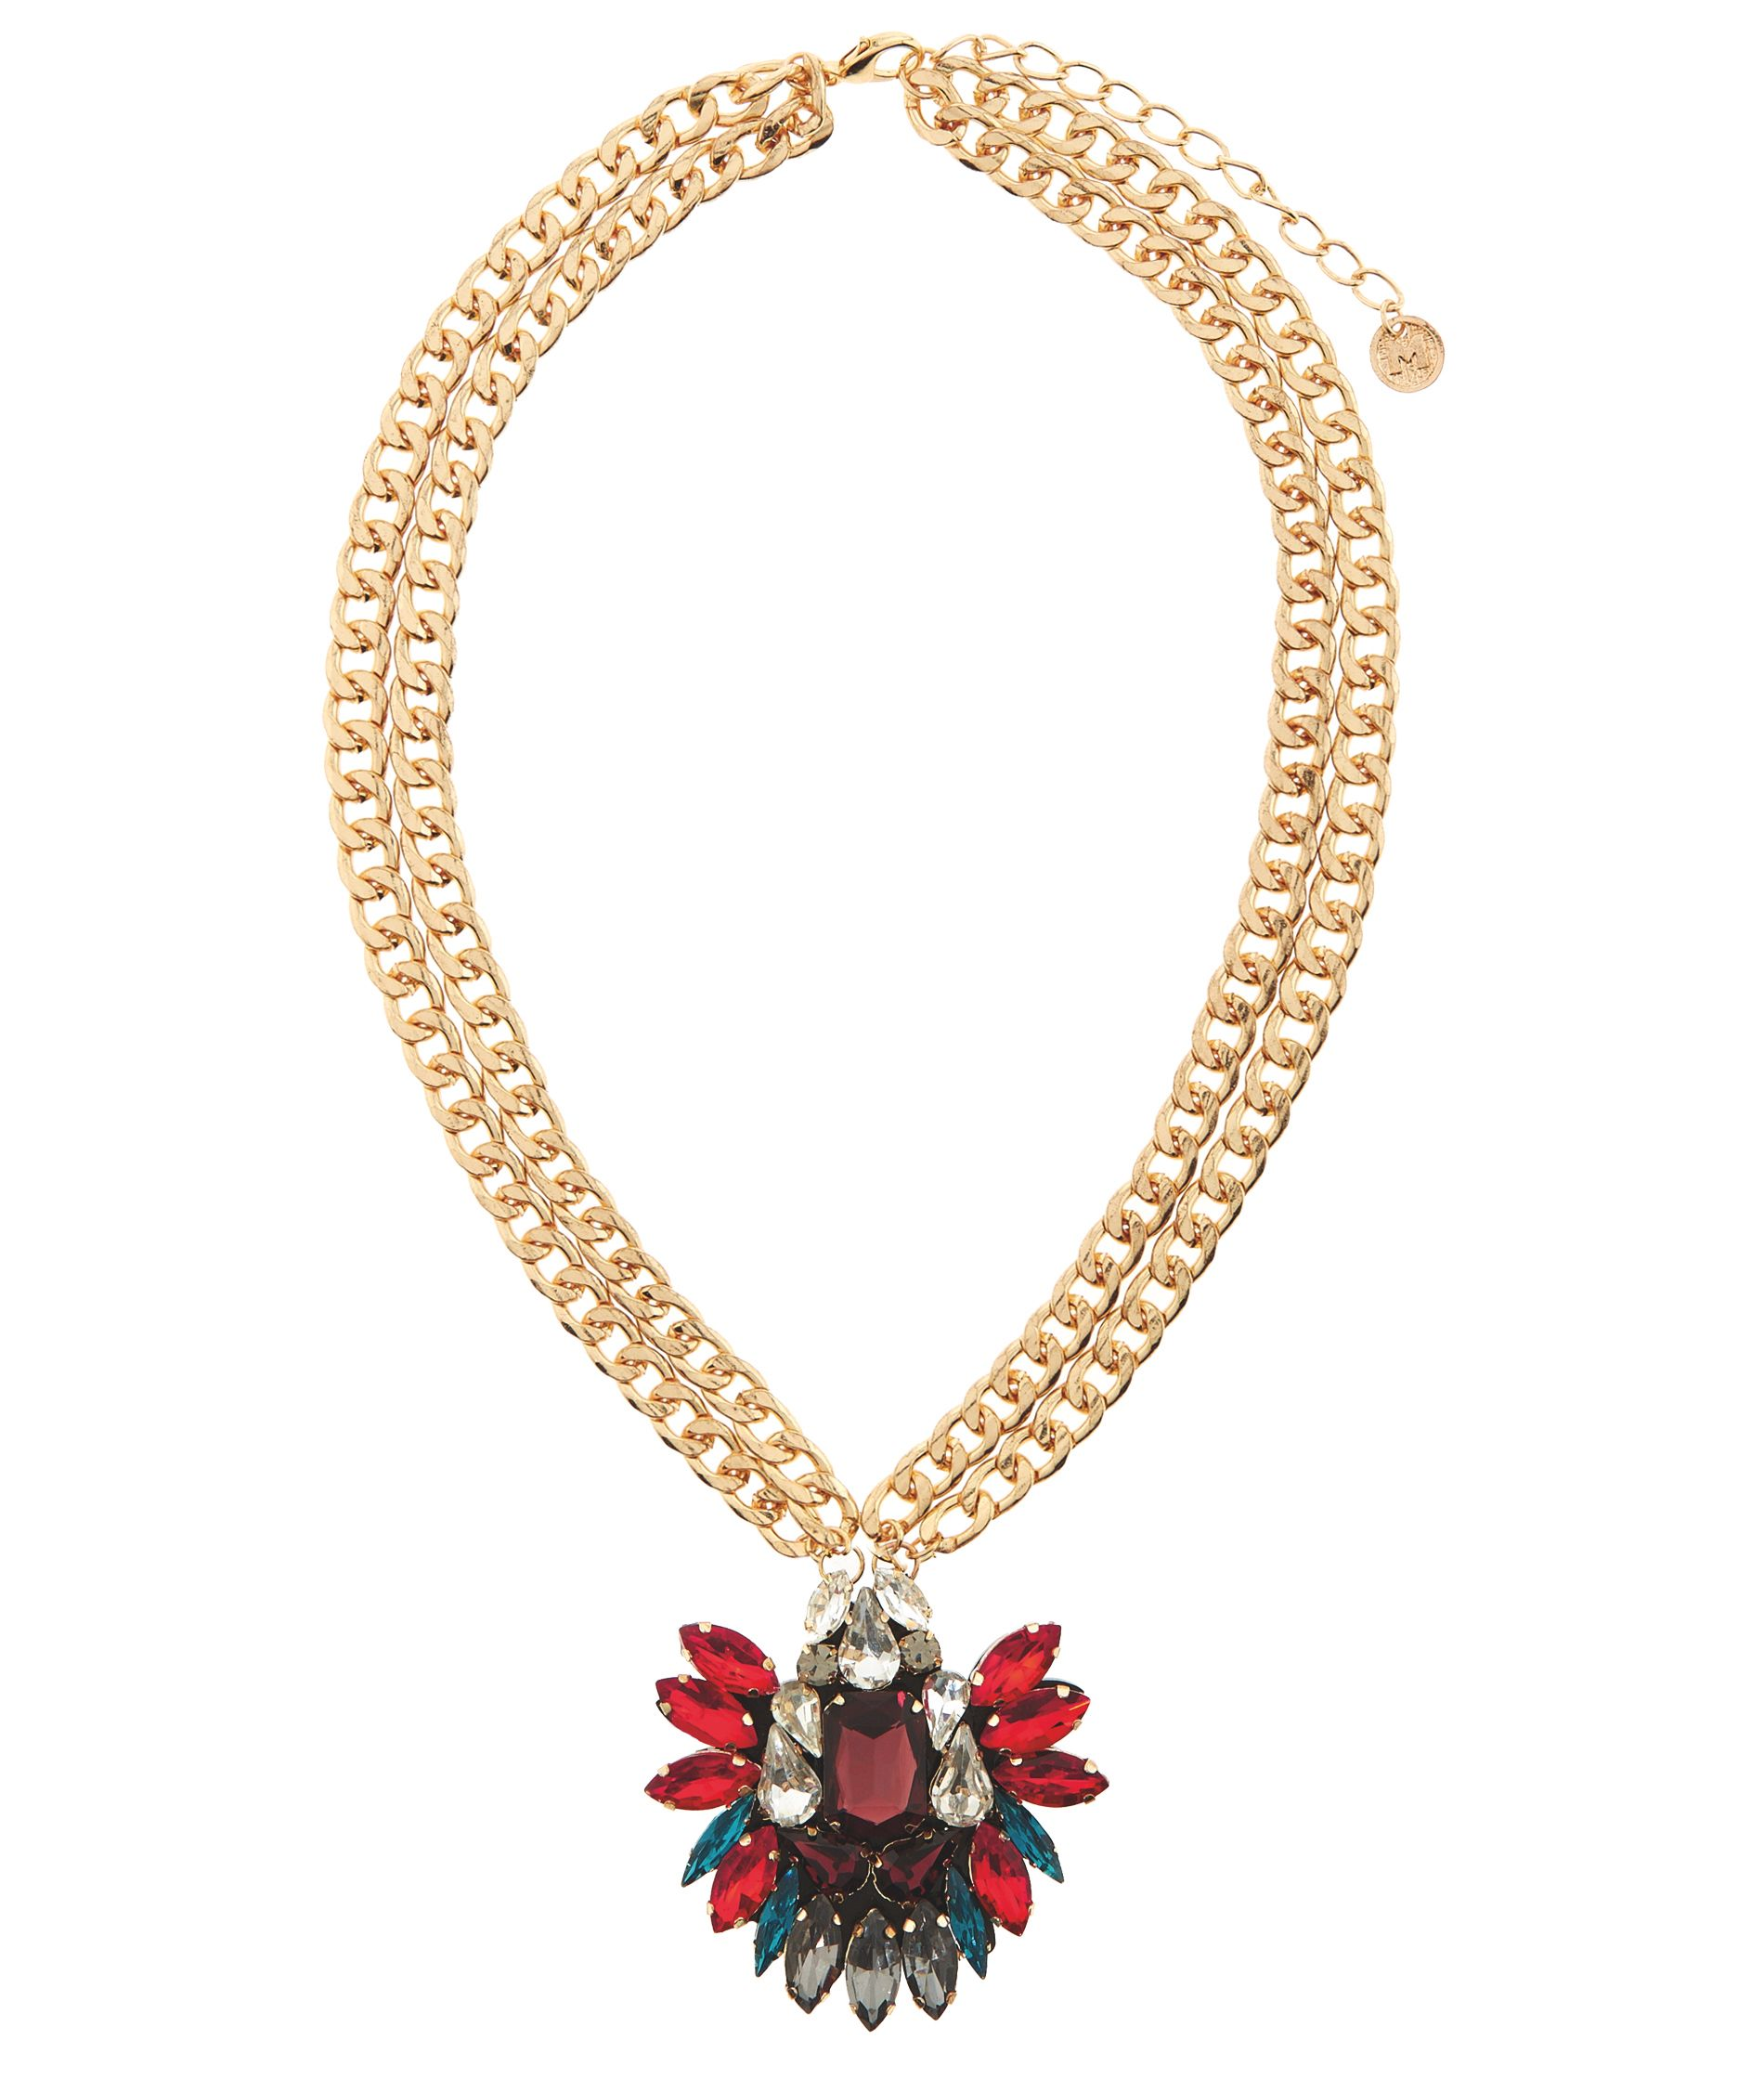 MAIOCCI Collection MAIOCCI Collection Mauka deep red hand made necklace, Red